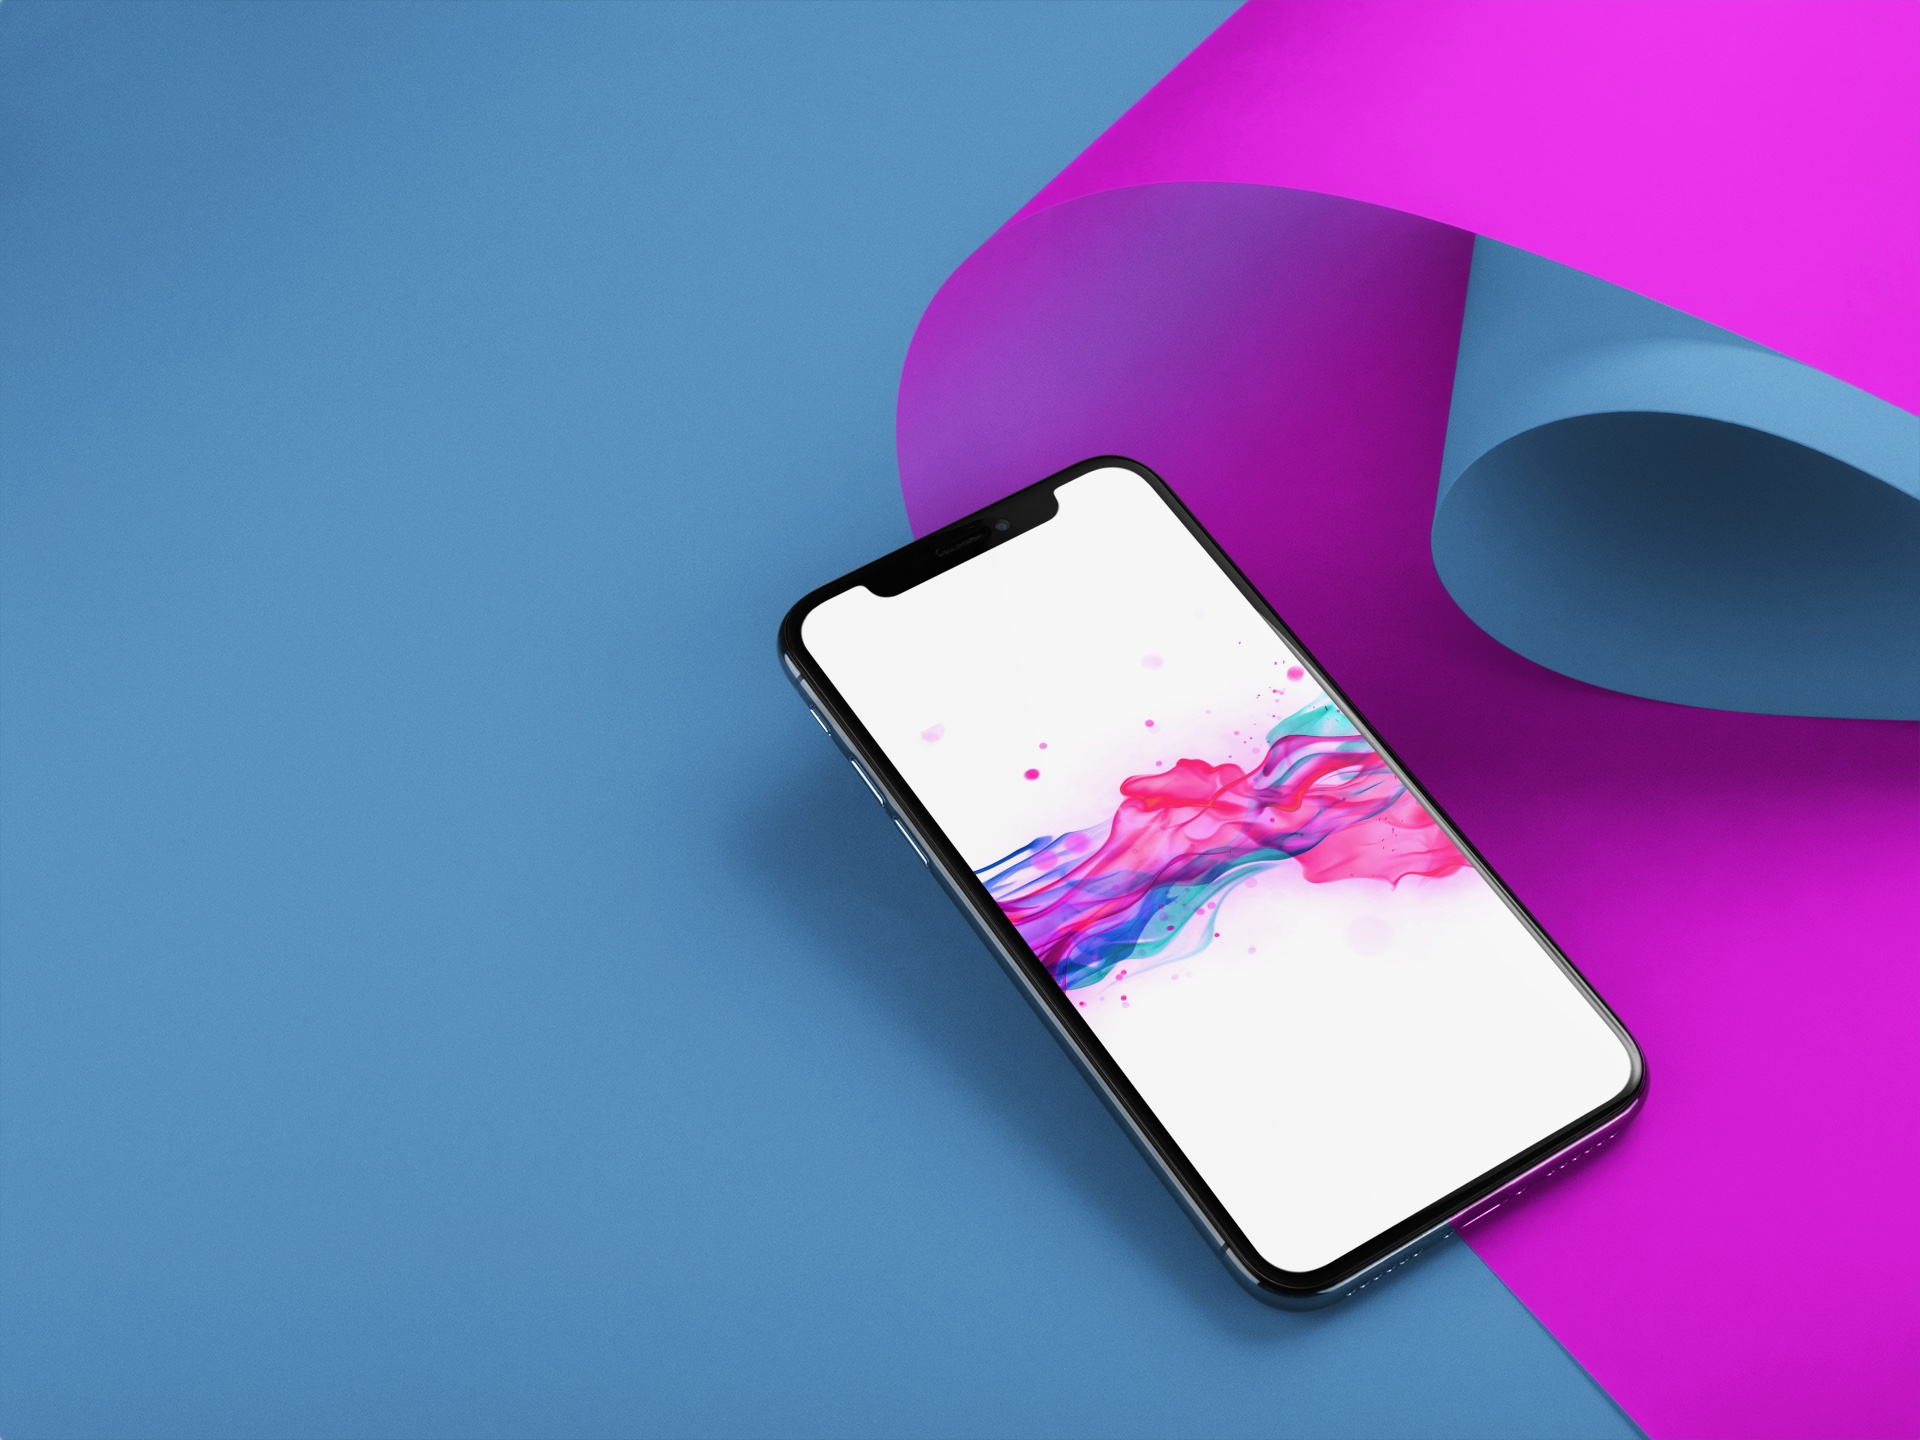 New Wallpaper Color Iphone: Download These Color Spectrum Wallpapers For IPhone